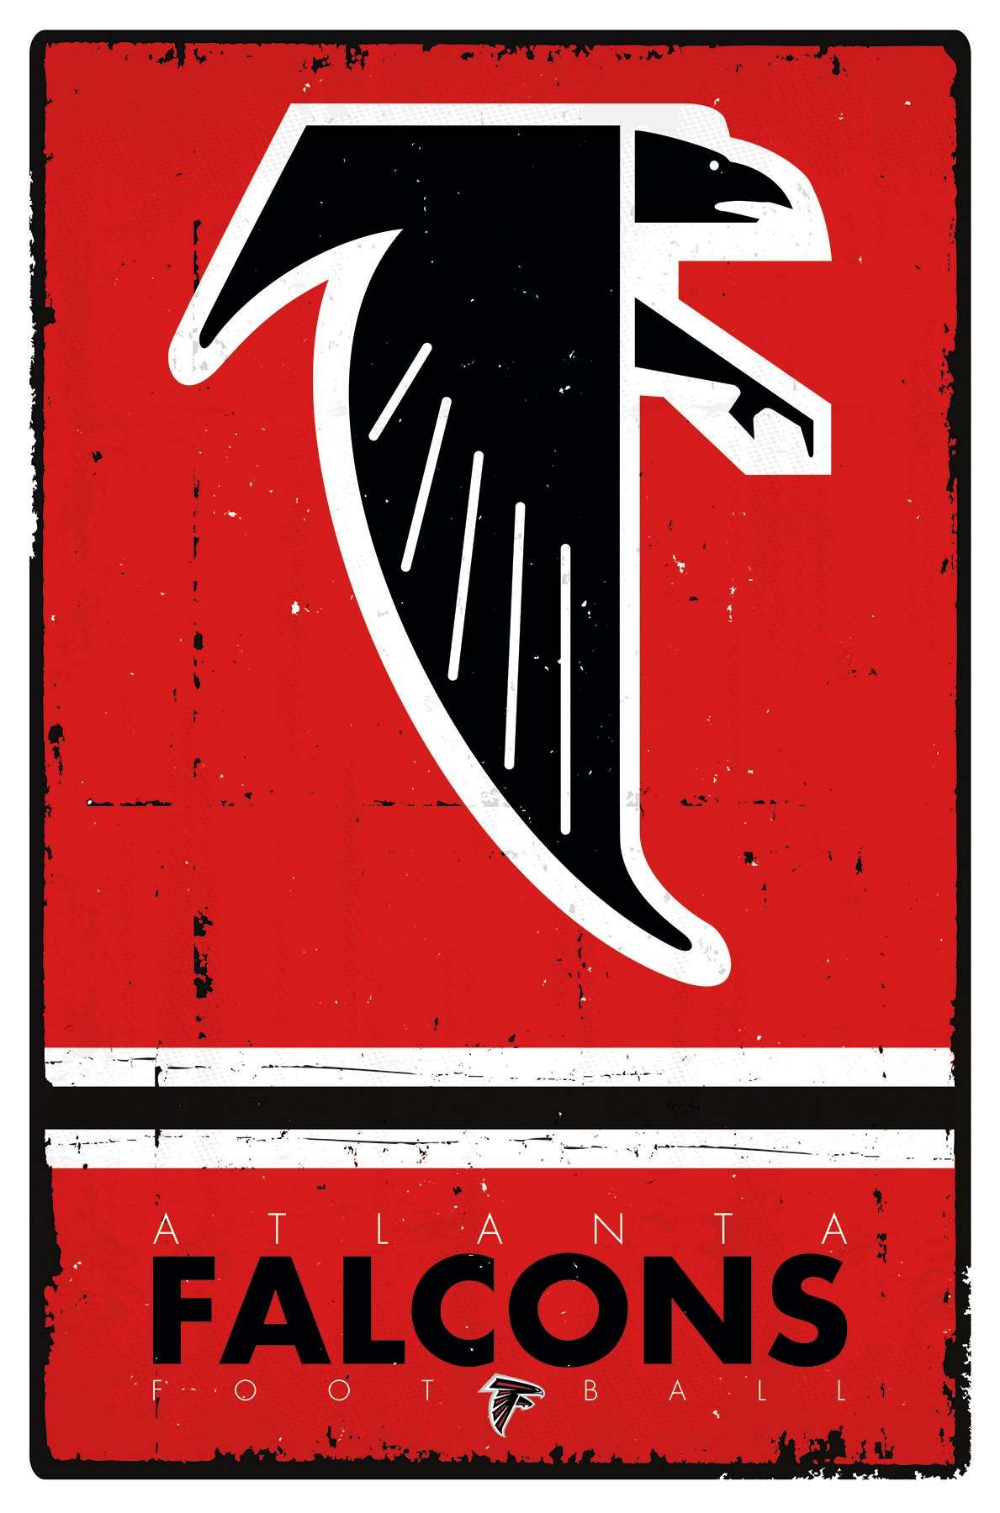 Nfl Atlanta Falcons Retro Logo Atlanta Falcons Poster Atlanta Falcons Falcons Football